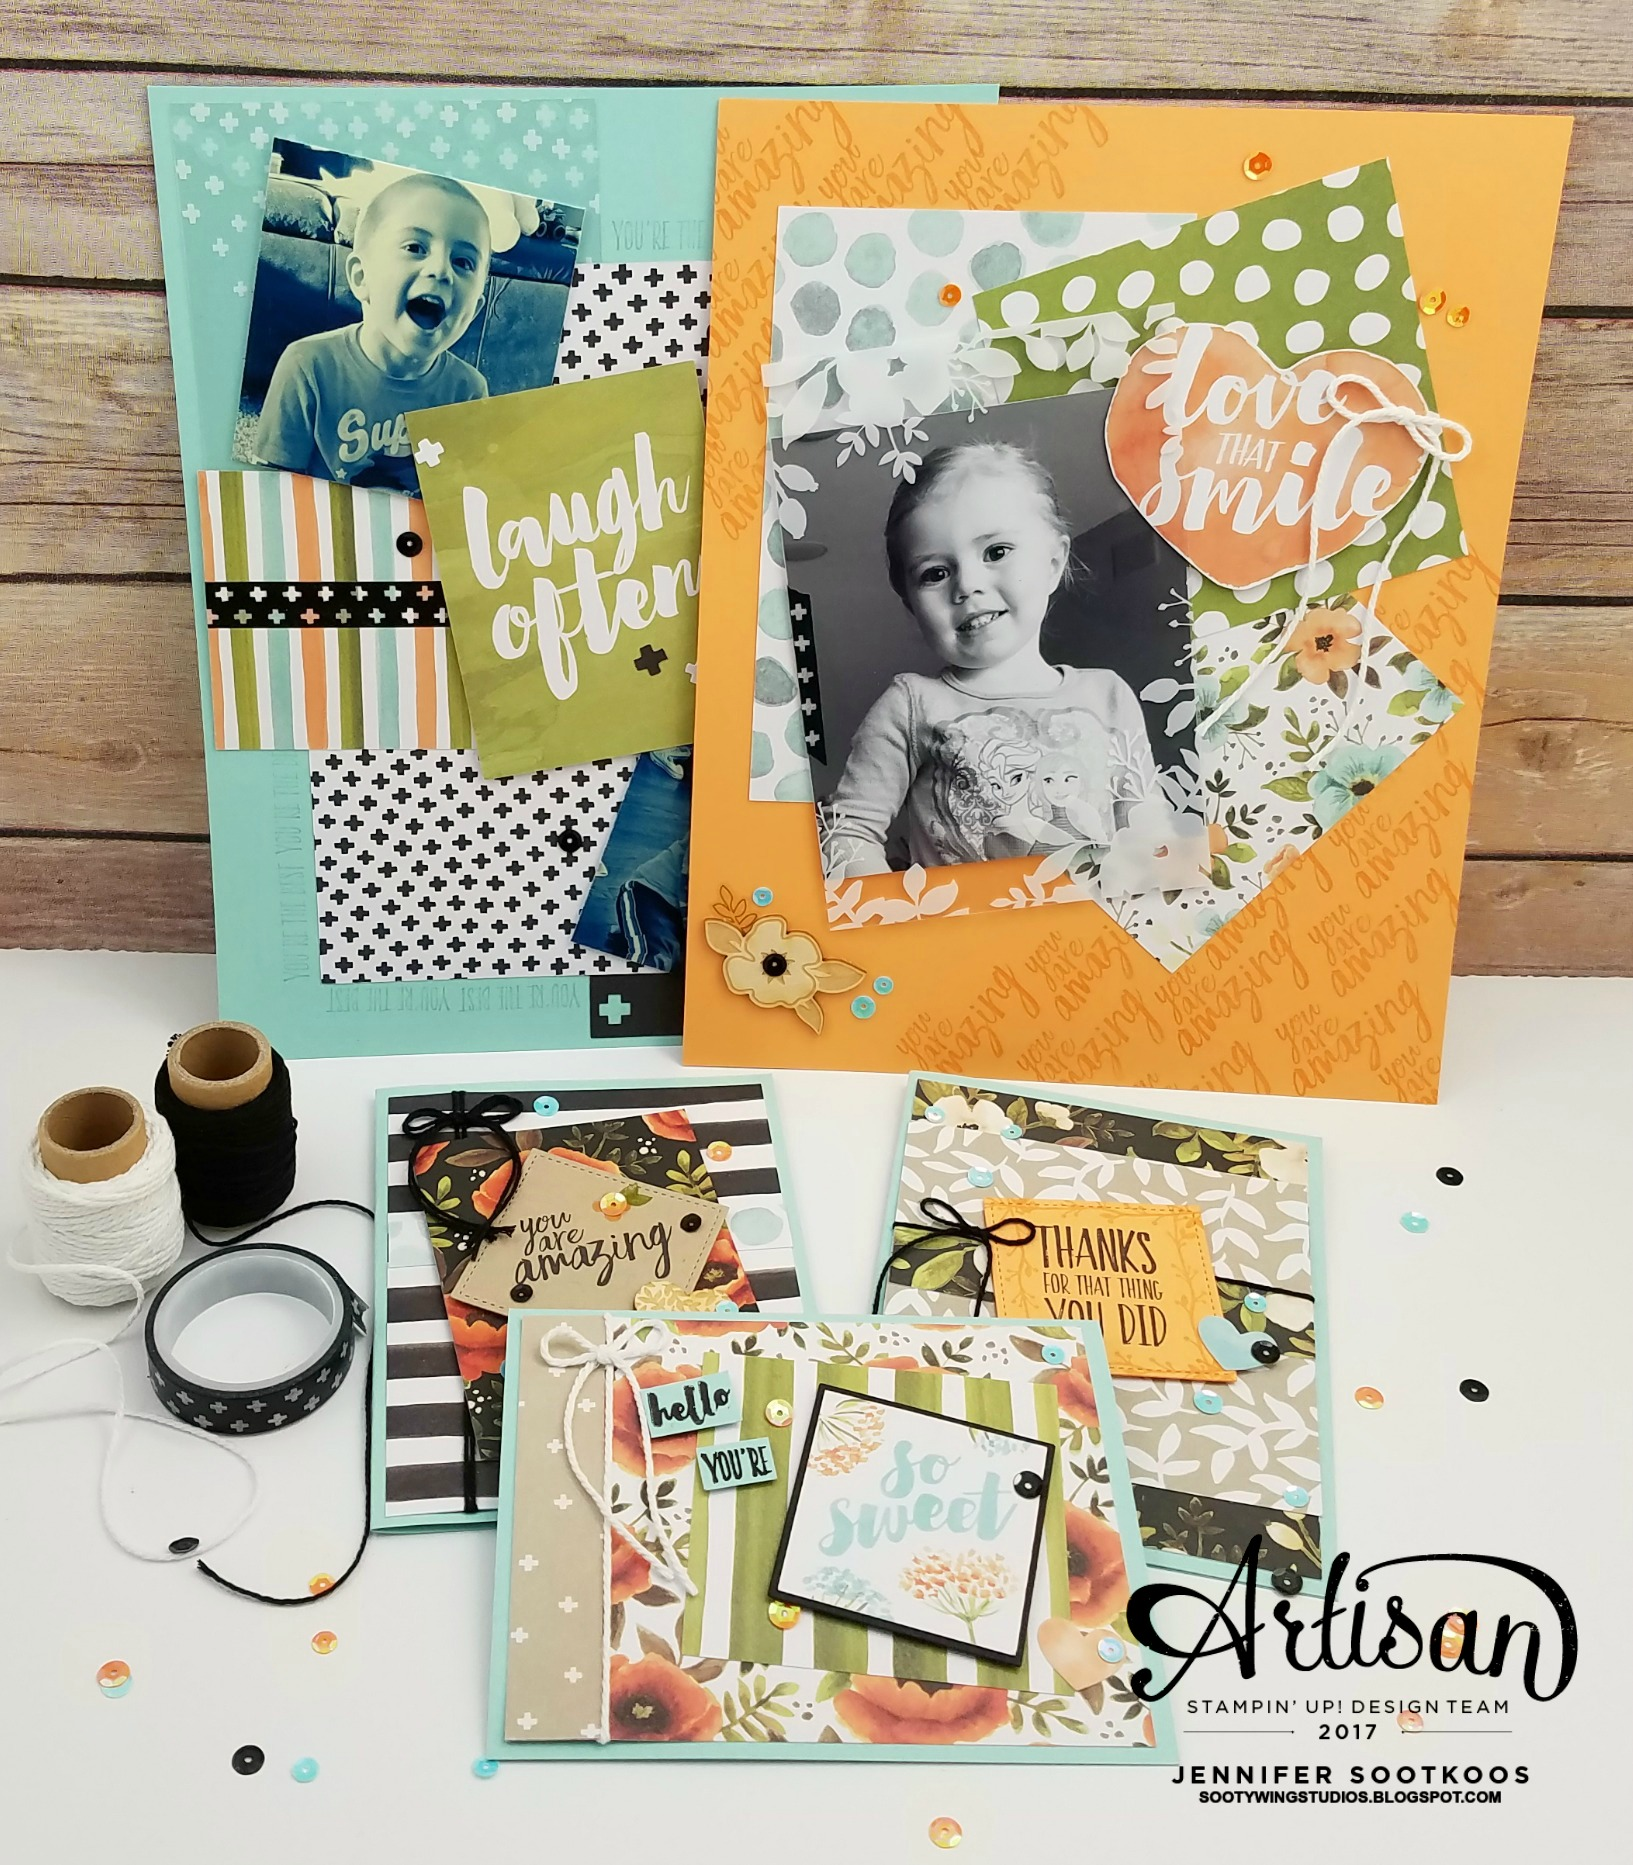 How to make scrapbook for husband - Both Of These Scrapbook Pages Are 8 X 10 So They Will Fit Nicely In A Frame I Am Not Much Of A Scrapbooker But I Like To Make Single Pages That